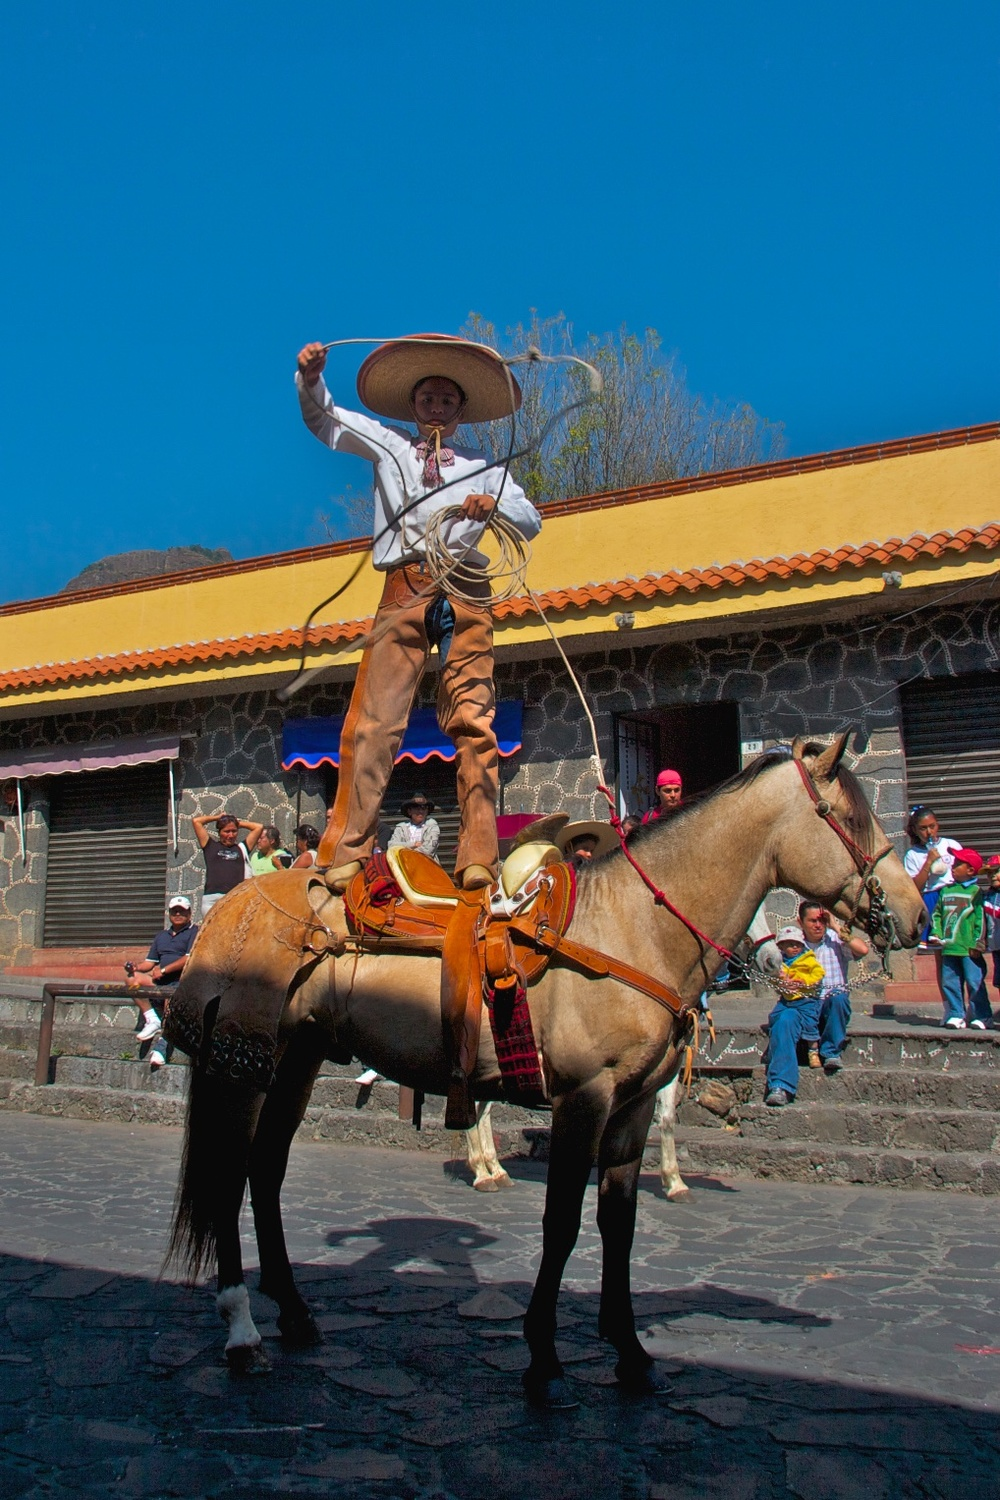 Horseback charro on Revolution day. Tepoztlán, Mexico